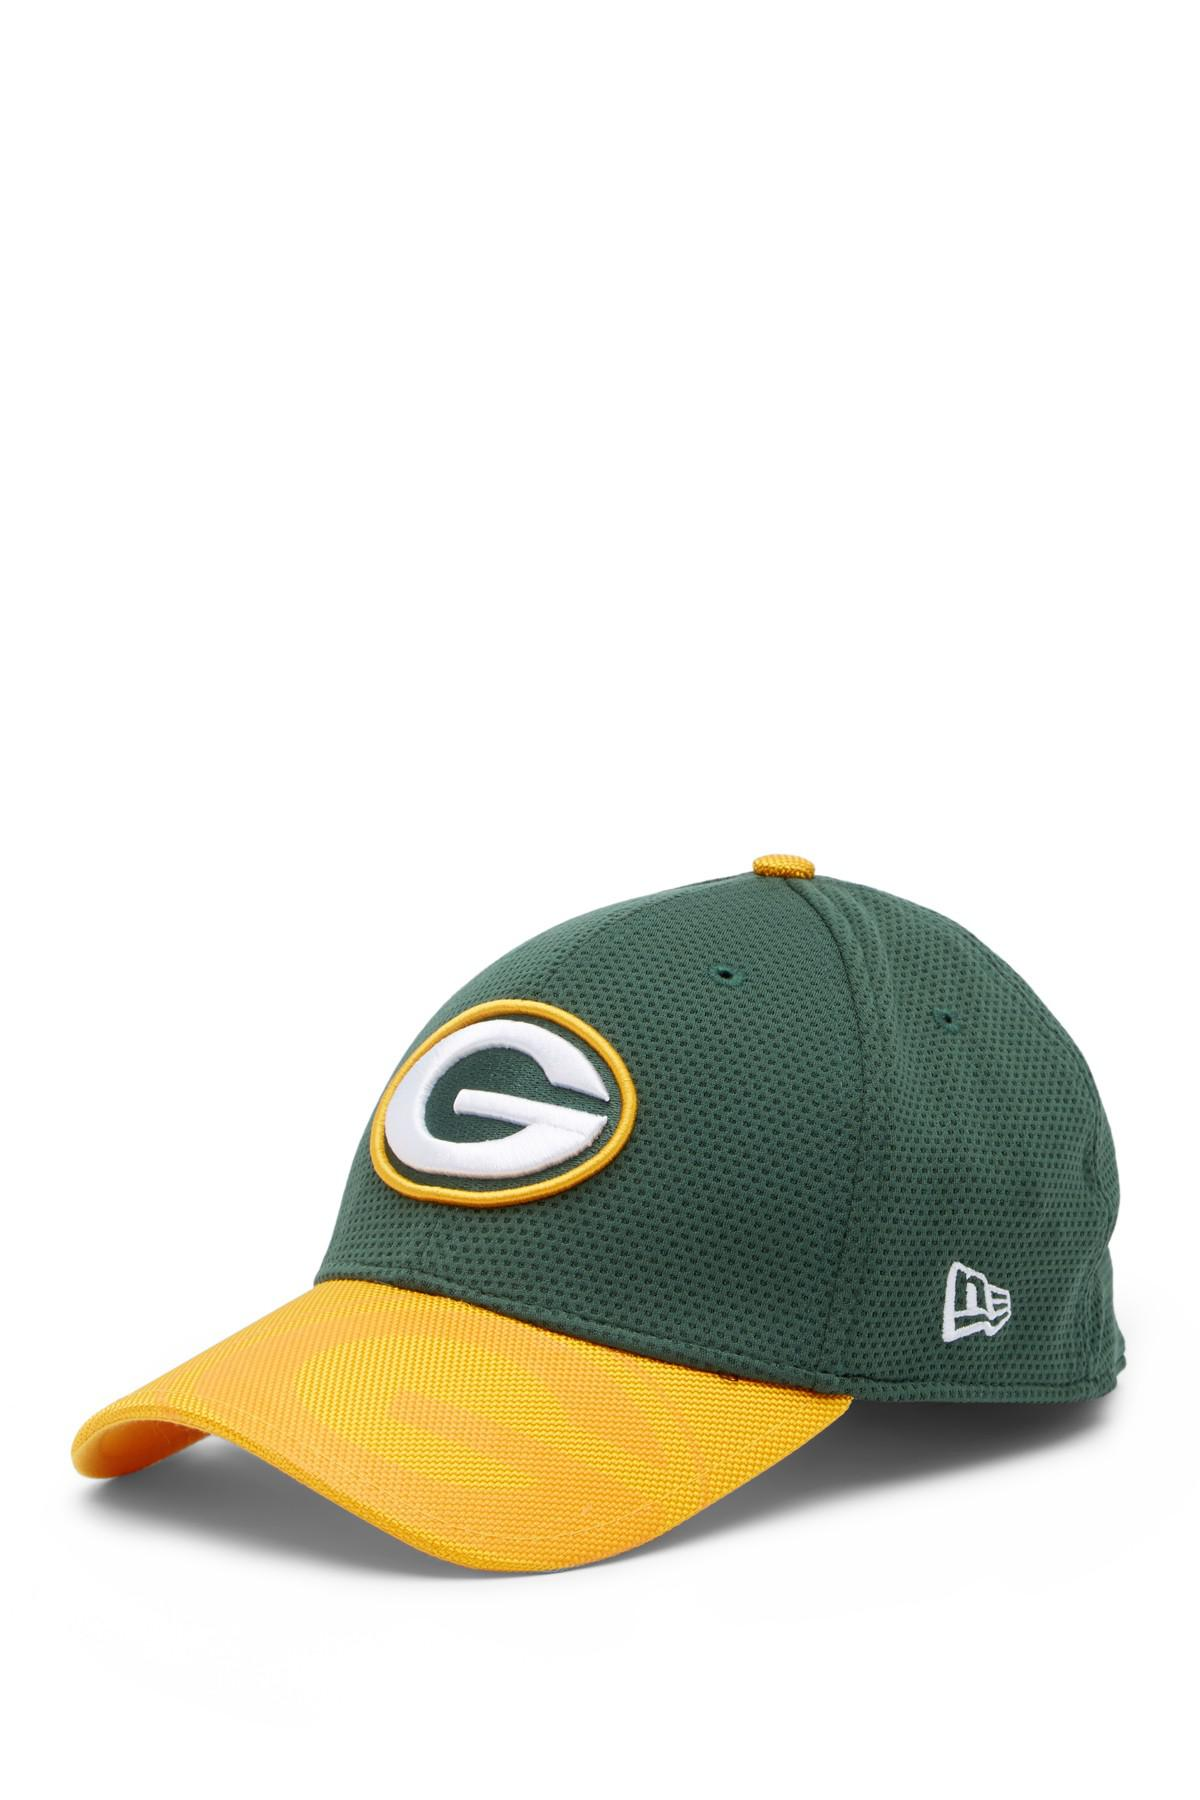 77b63cd587f44 Ktz Nfl 16 3930 Greenbay Packers Cap in Green for Men - Lyst